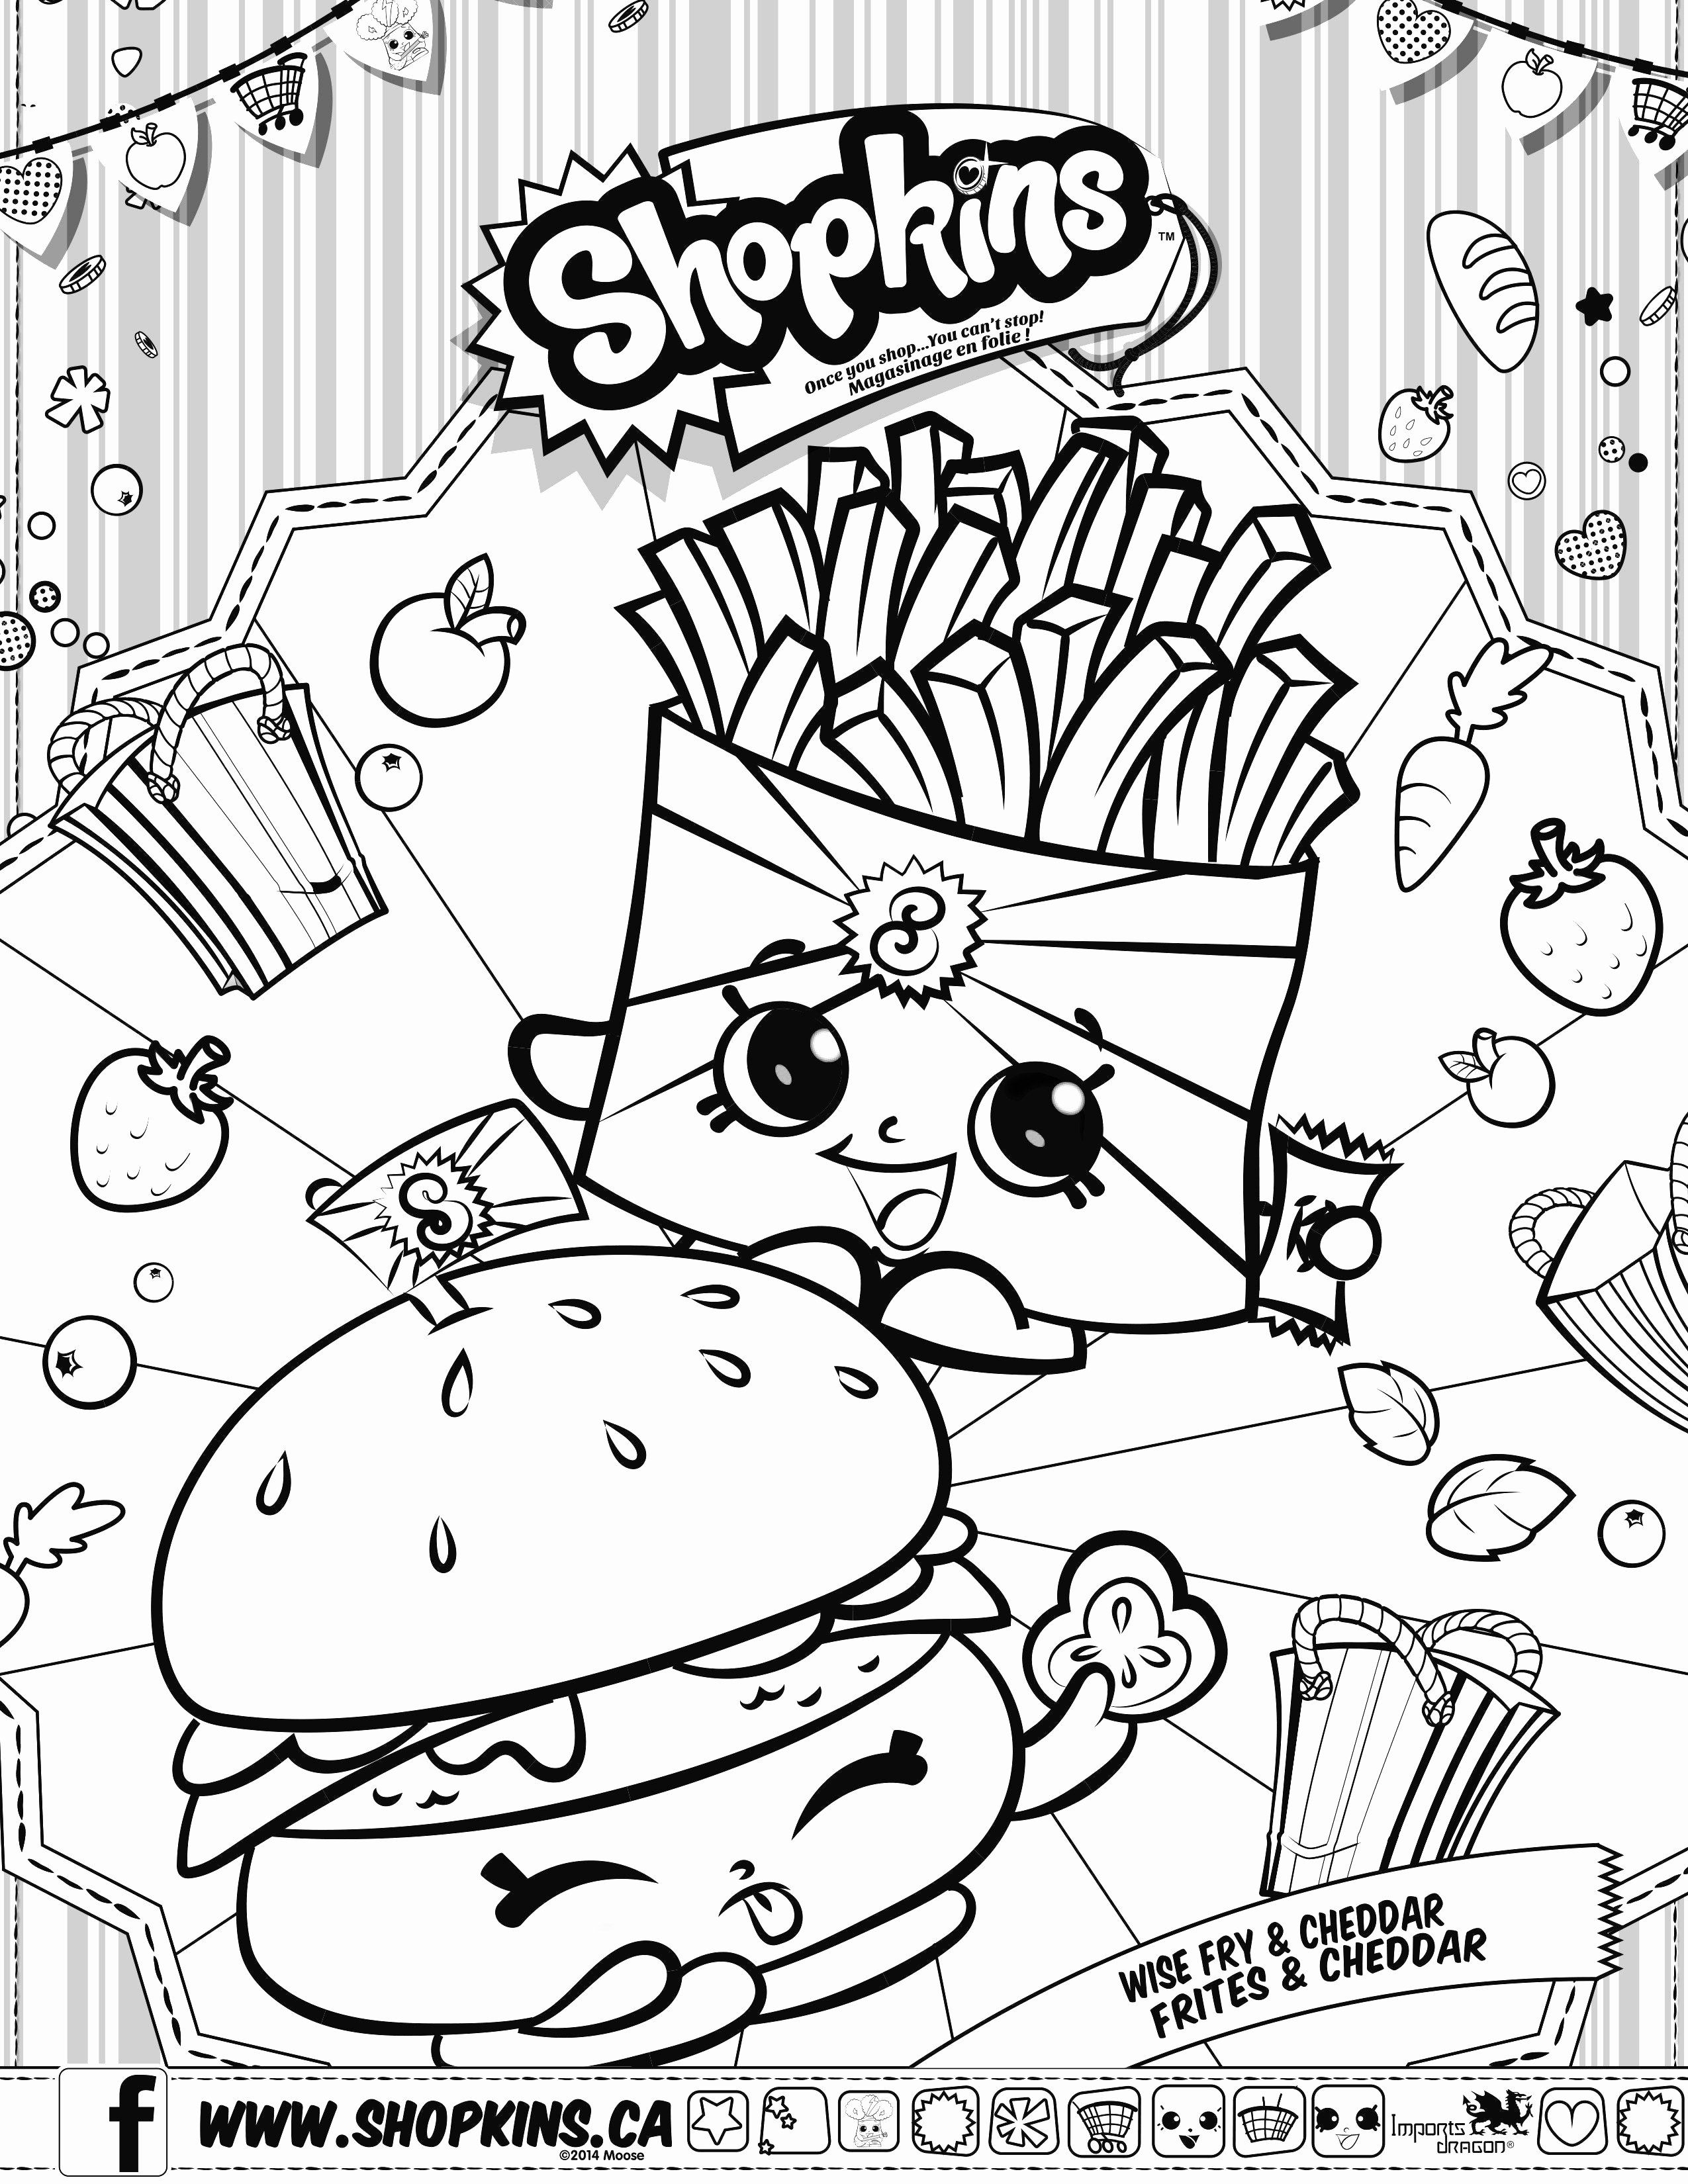 Pin On Example Shopkins Coloring Pages